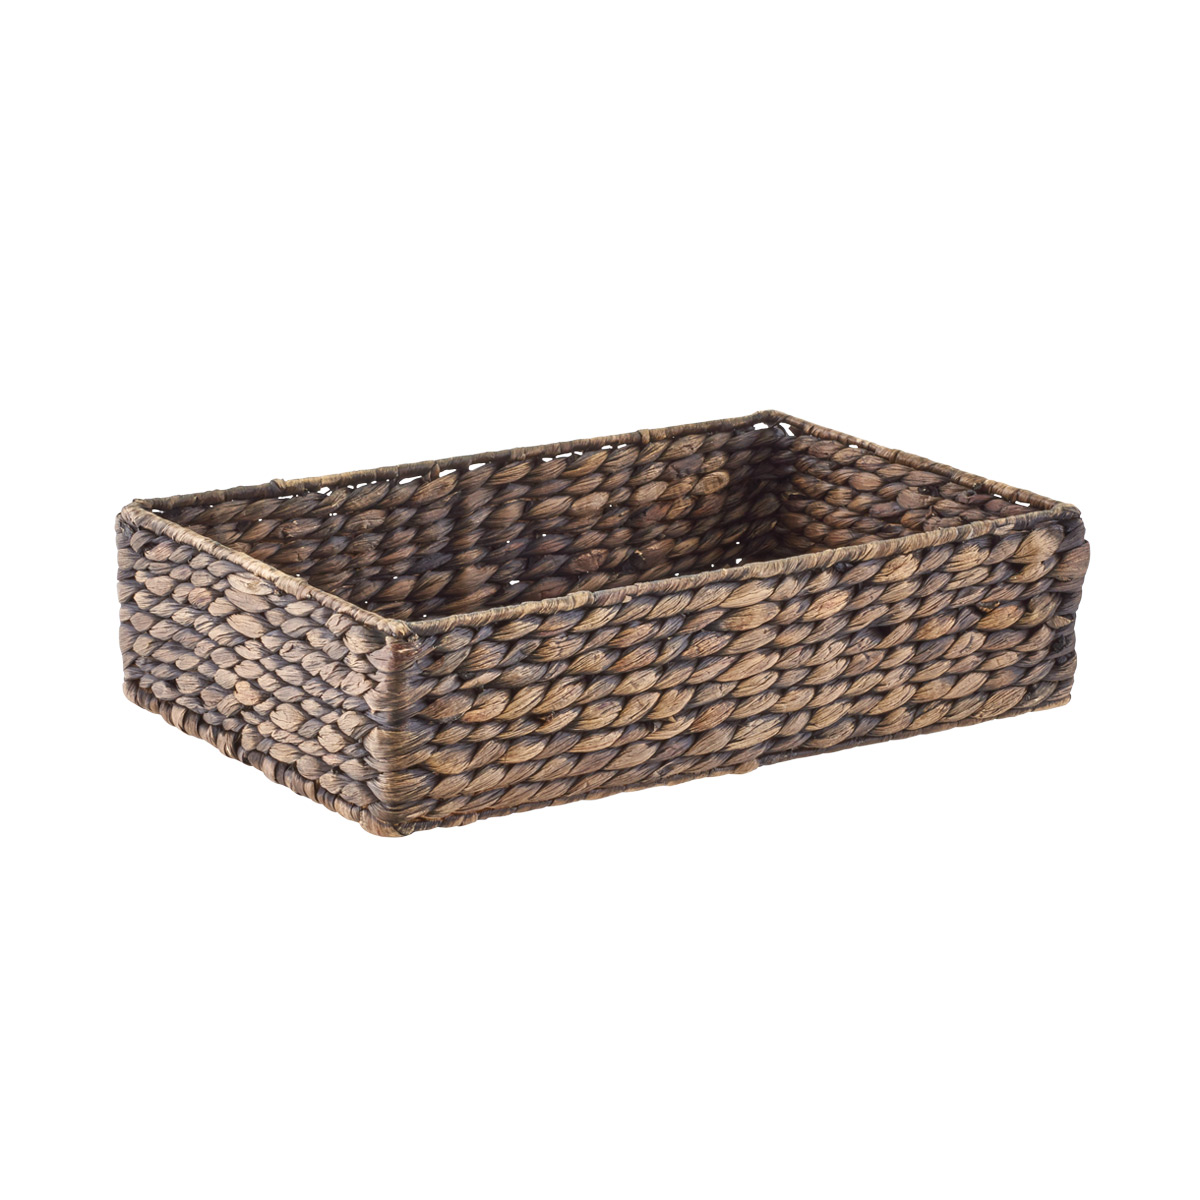 Large Mocha Water Hyacinth Tray